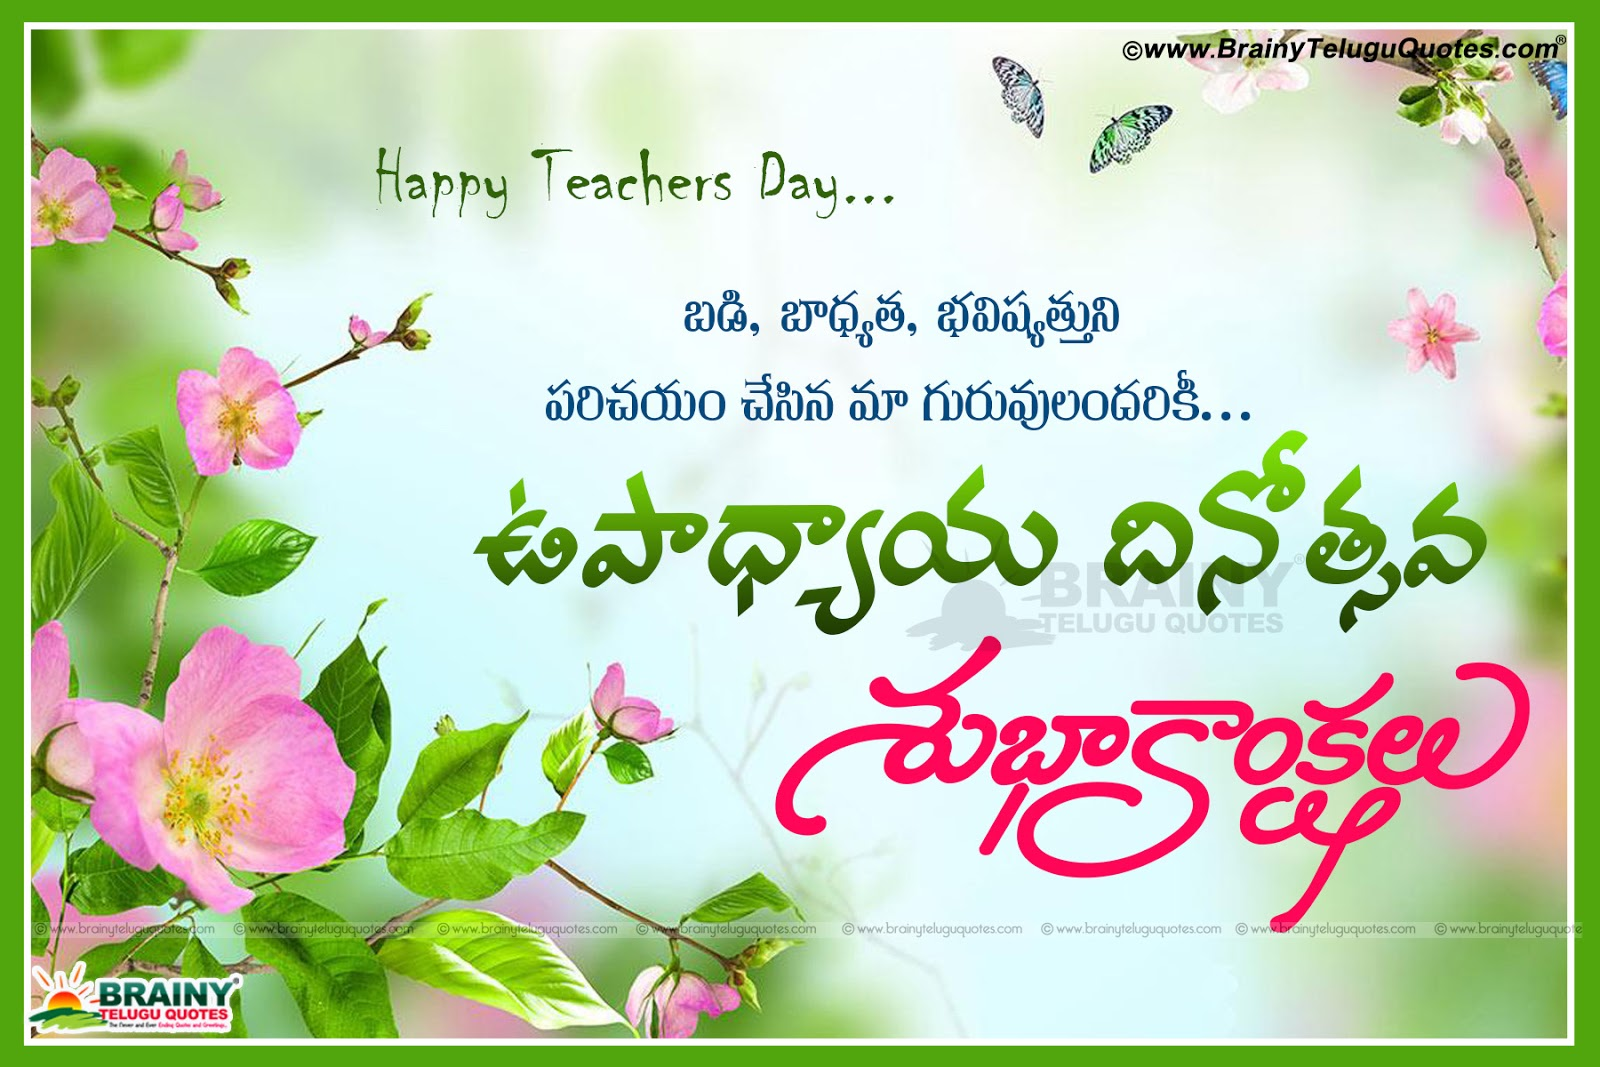 Teachers day wishes messages in tamil best teachers day greetings quotes sms images kristyandbryce Image collections